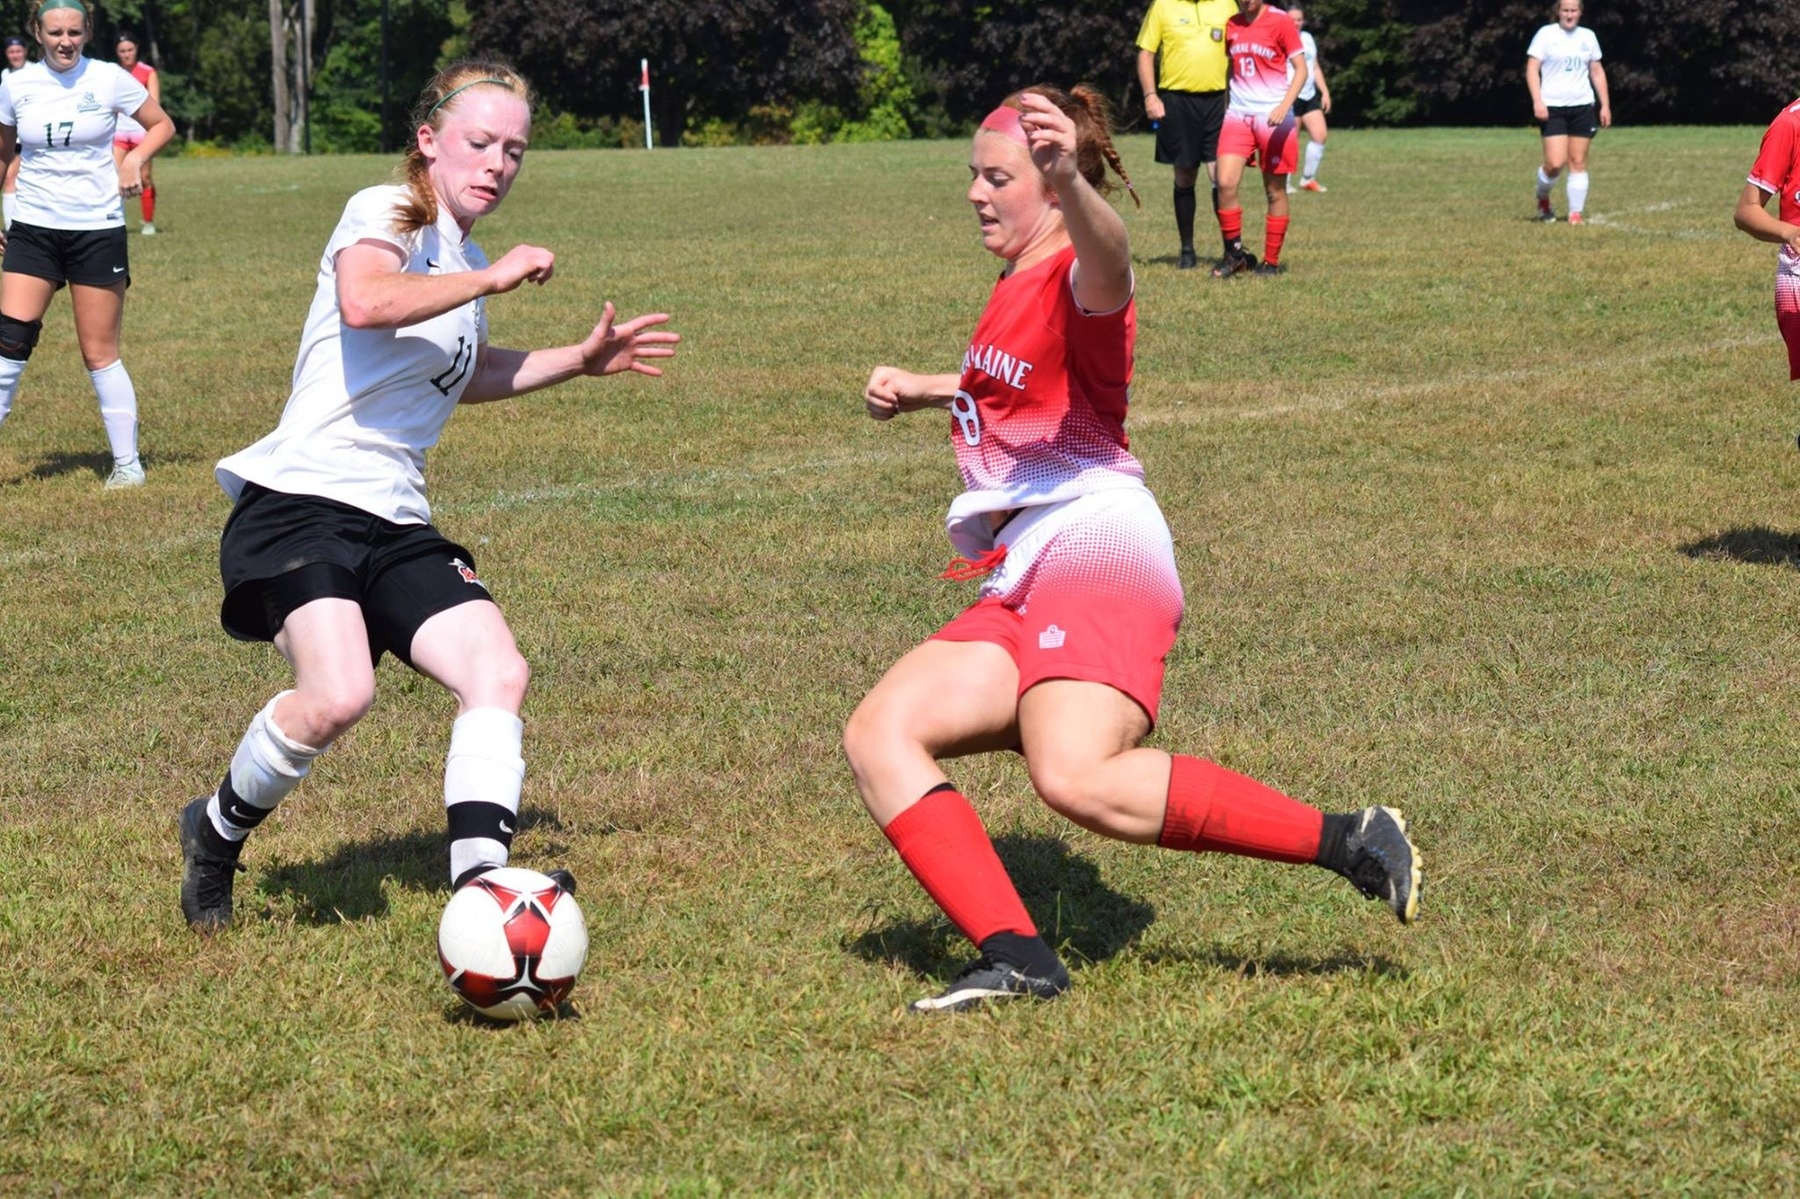 Women's Soccer tames Bobcats, improves to 3-2